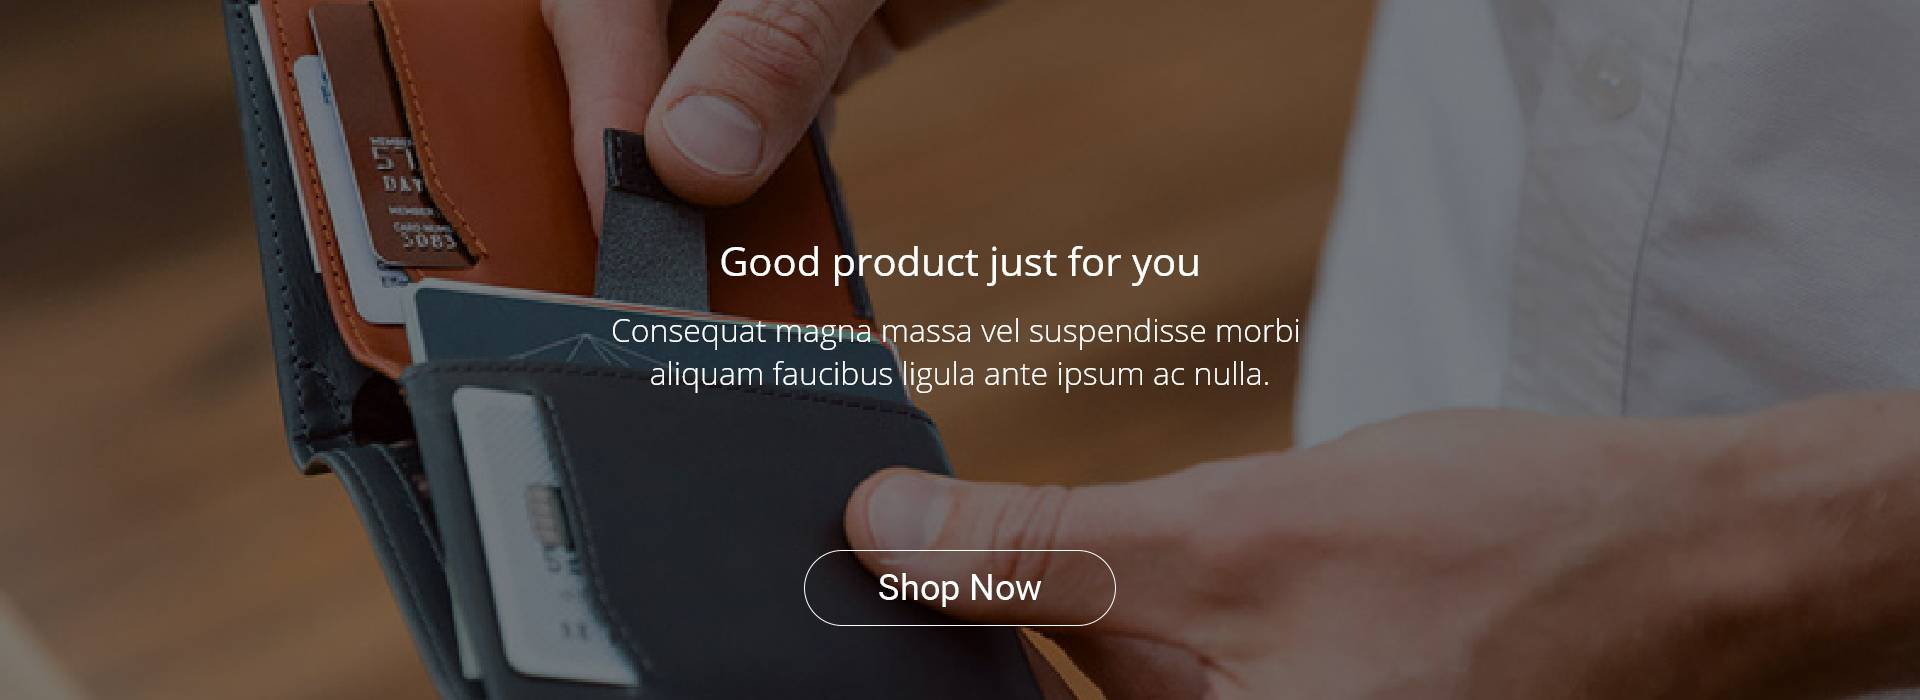 Good product just for you